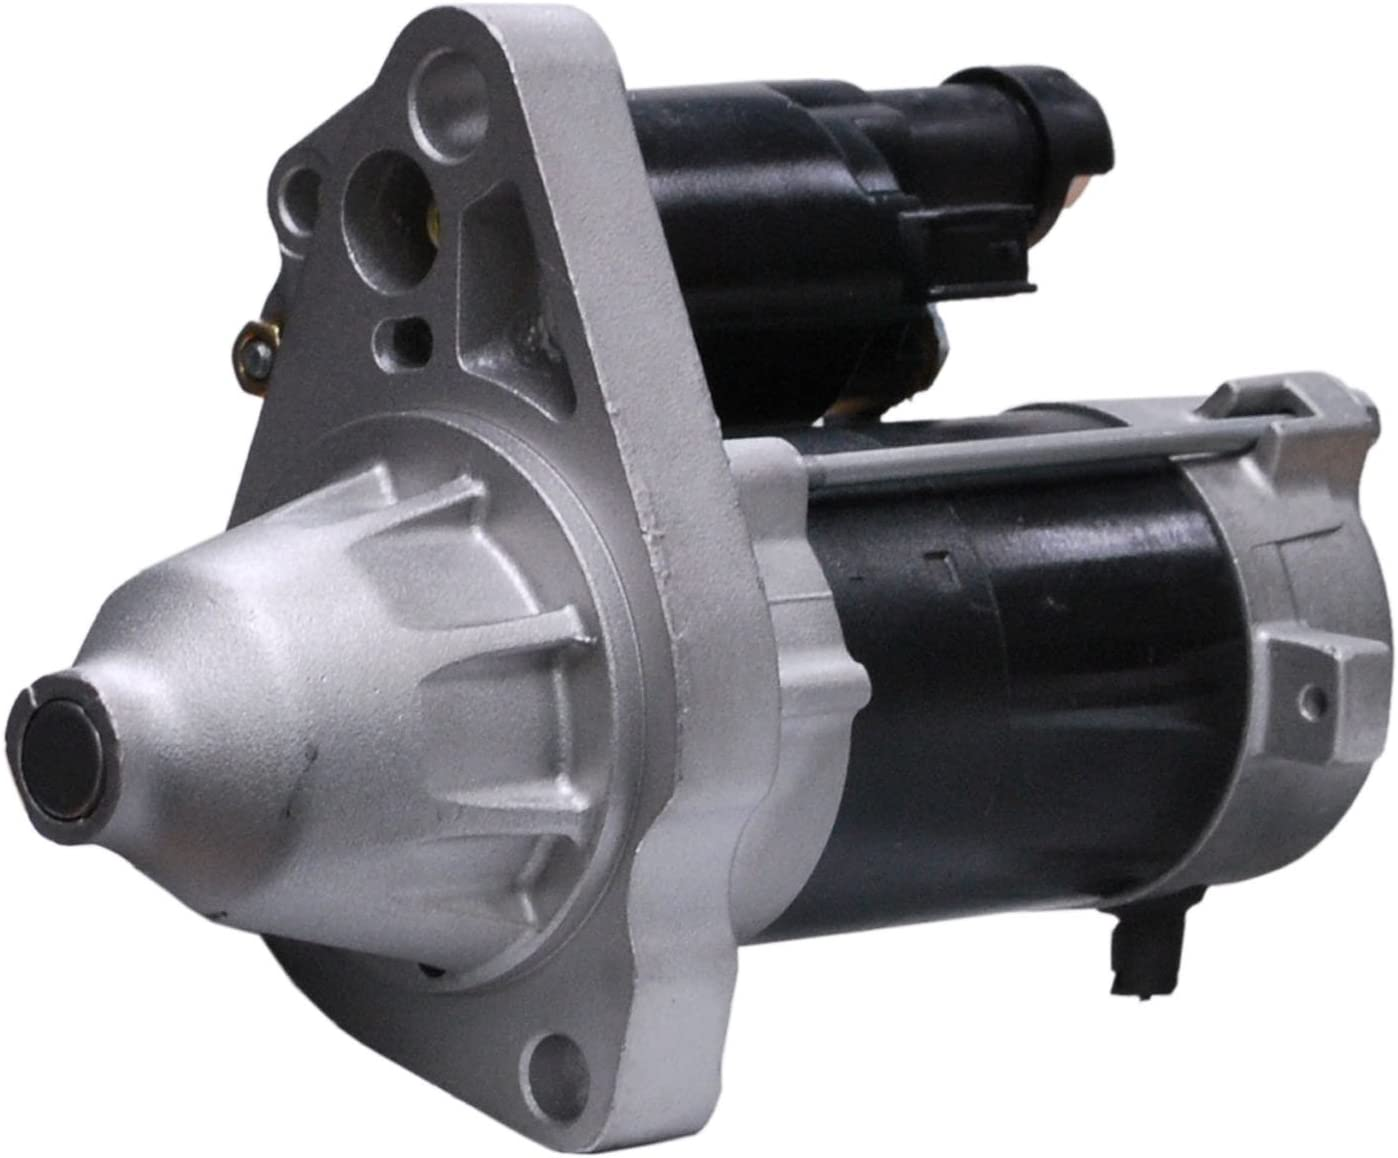 ACDelco 336-1923A Remanufactured Starter